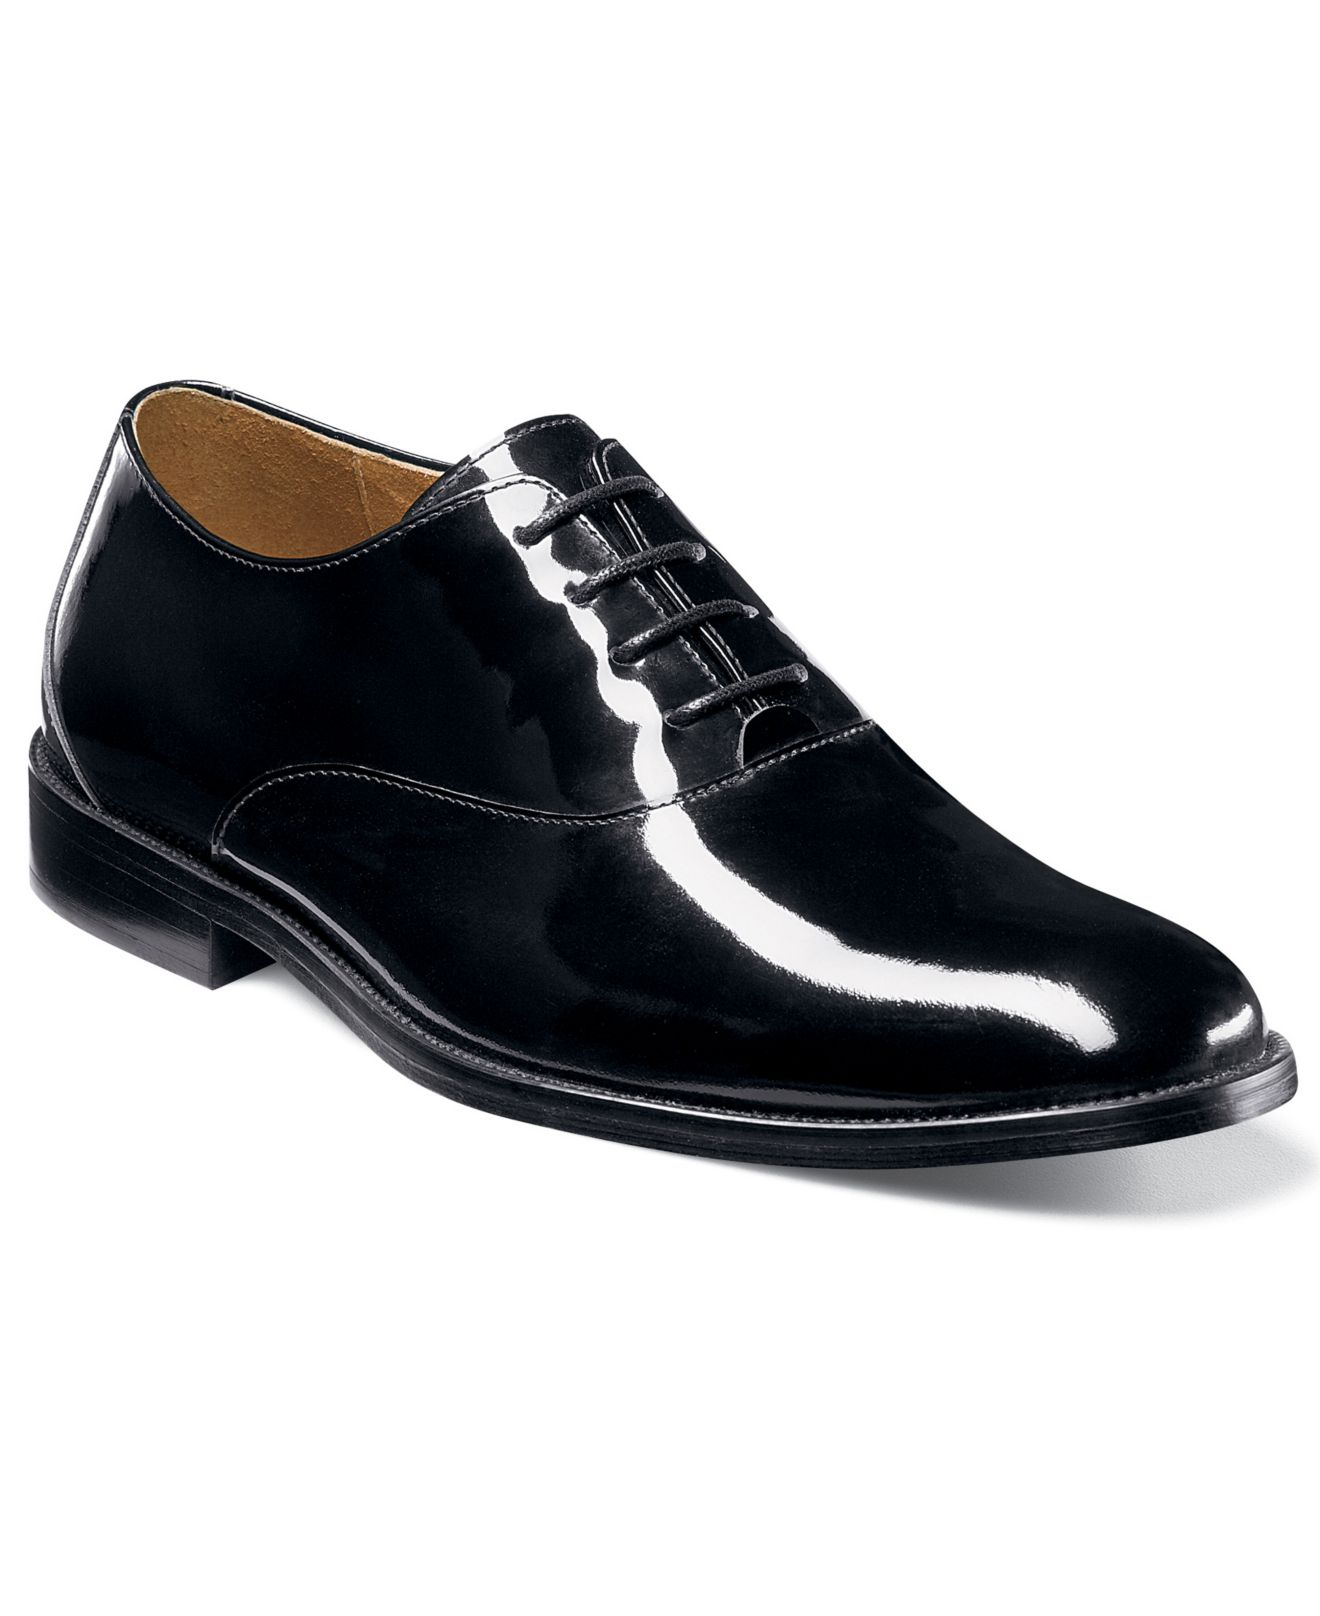 Womens Black Patent Leather Oxford Shoes